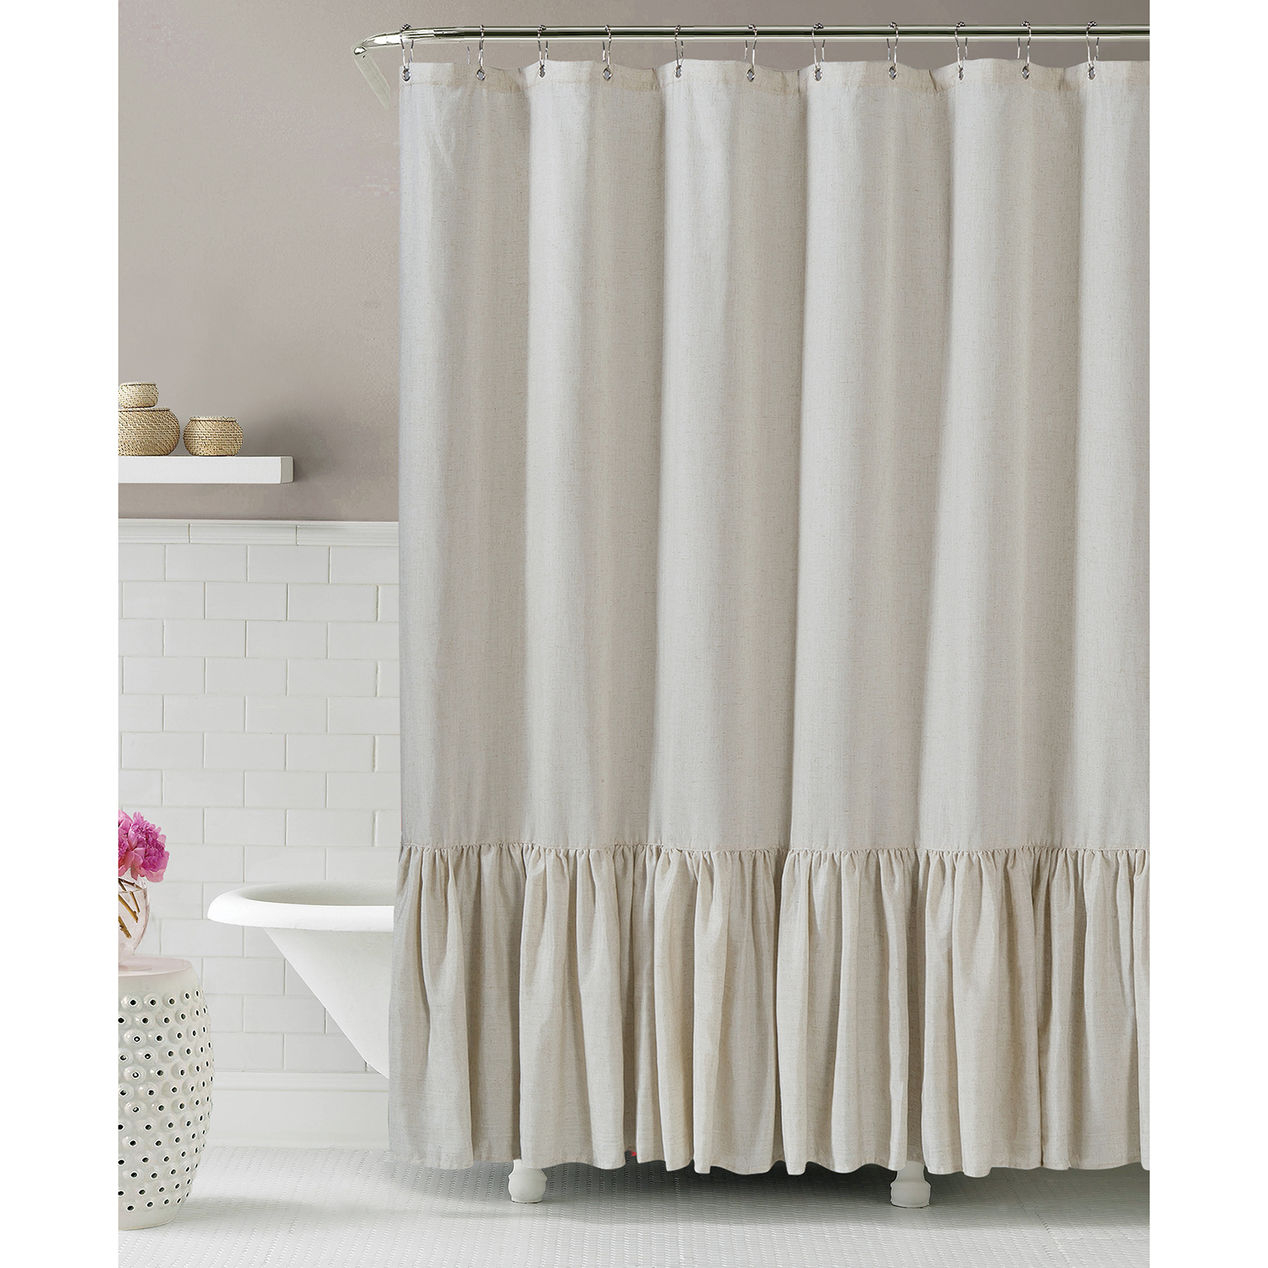 Curtains Hippie Bathroom Decor Boho Boutique Shower Curtain For Sizing 1268  X 1268